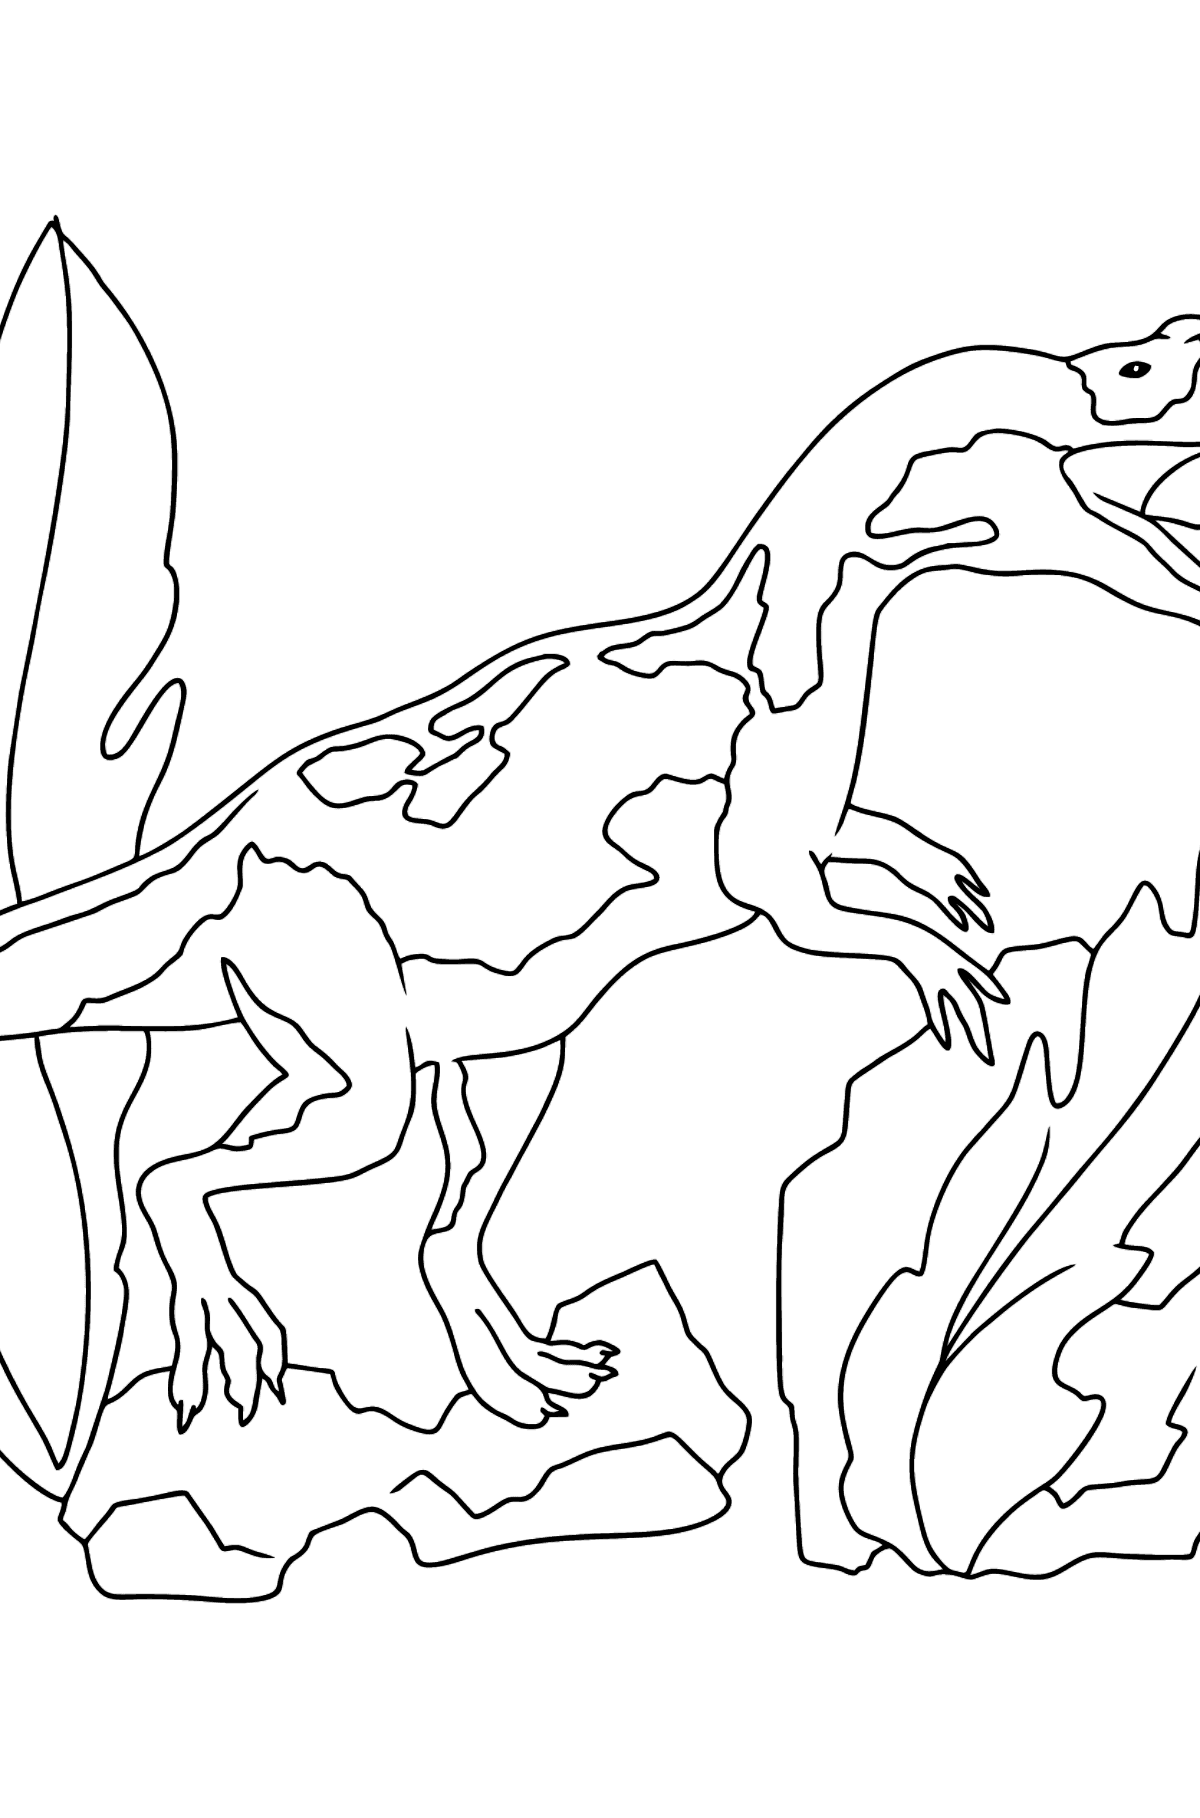 Coloring Page - Allosaurus - Jurassic Dinosaur - Coloring Pages for Kids